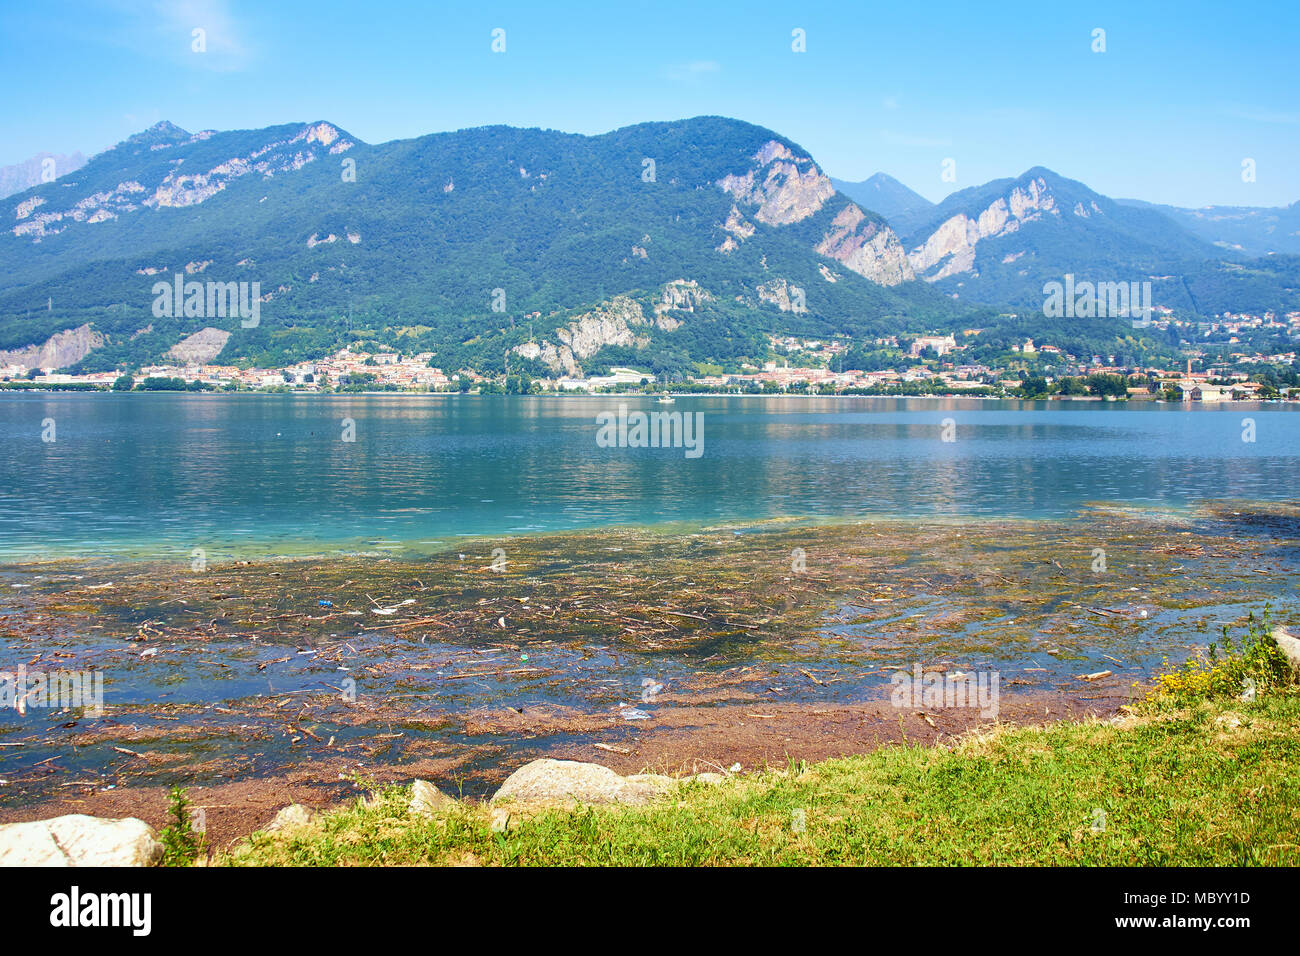 Dirty water with algae on lake Como in Italy - Stock Image